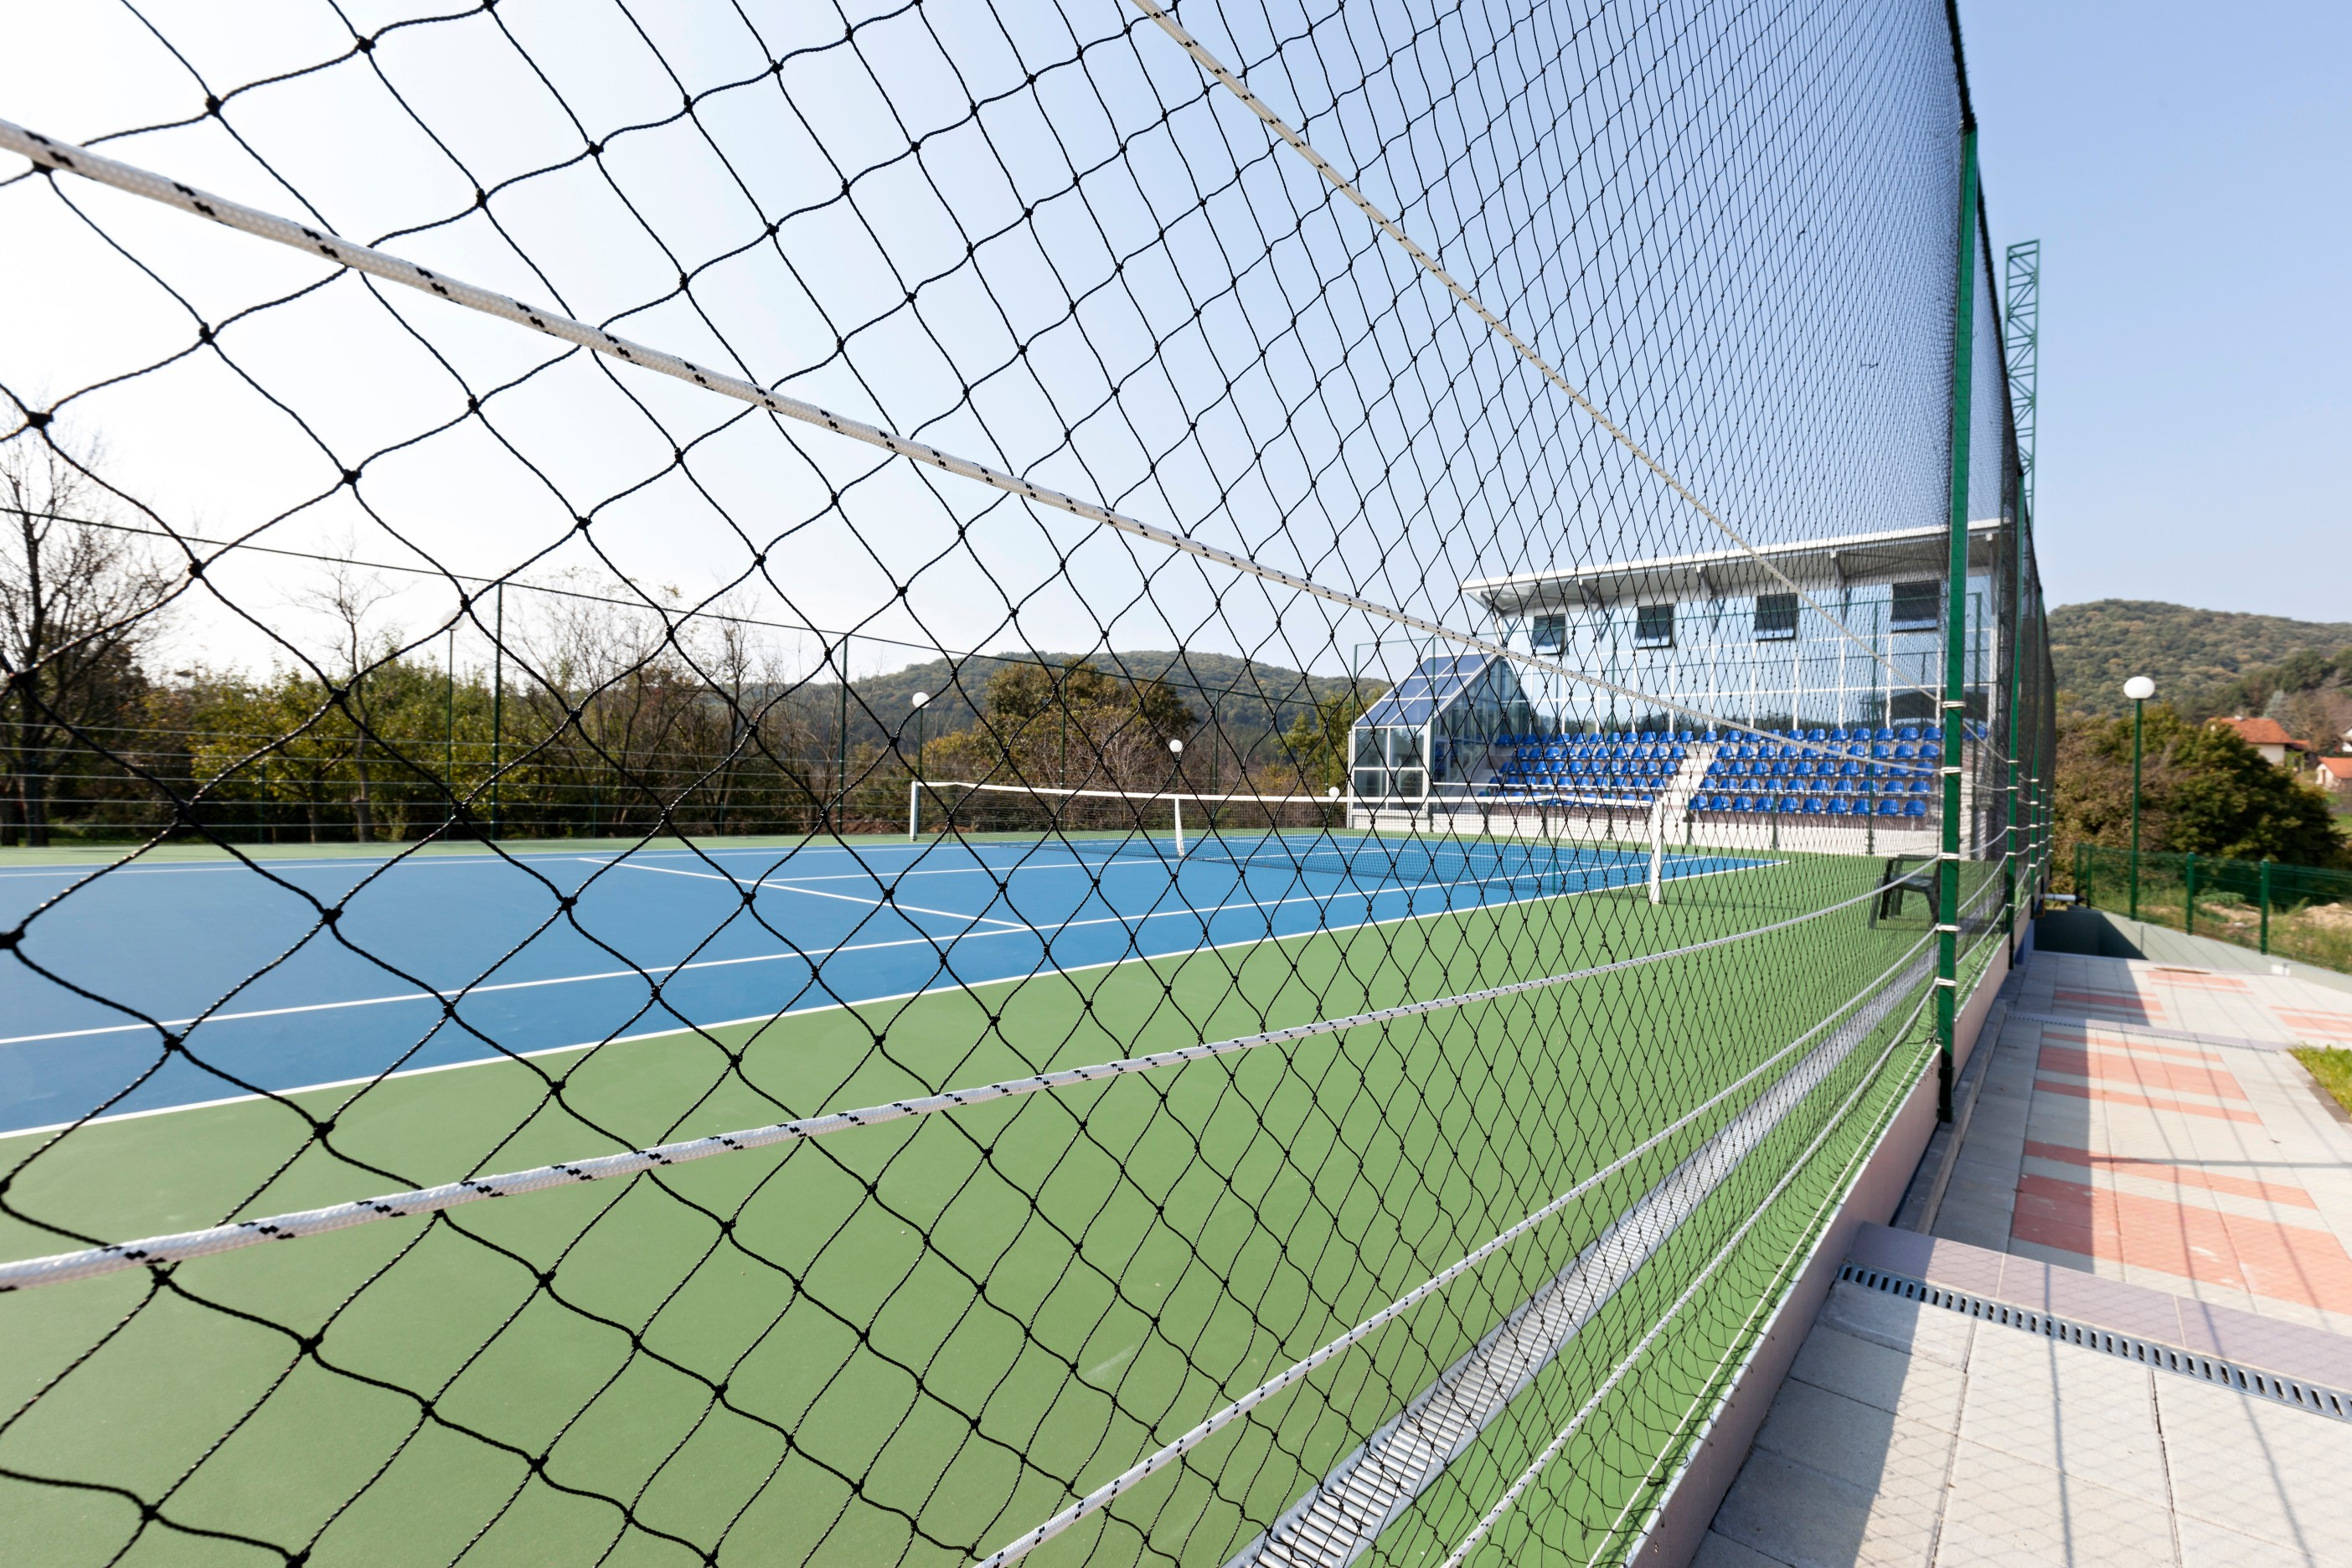 ETC sports Surfaces can finish your acrylic tennis courts with fencing, equipment and floodlighting